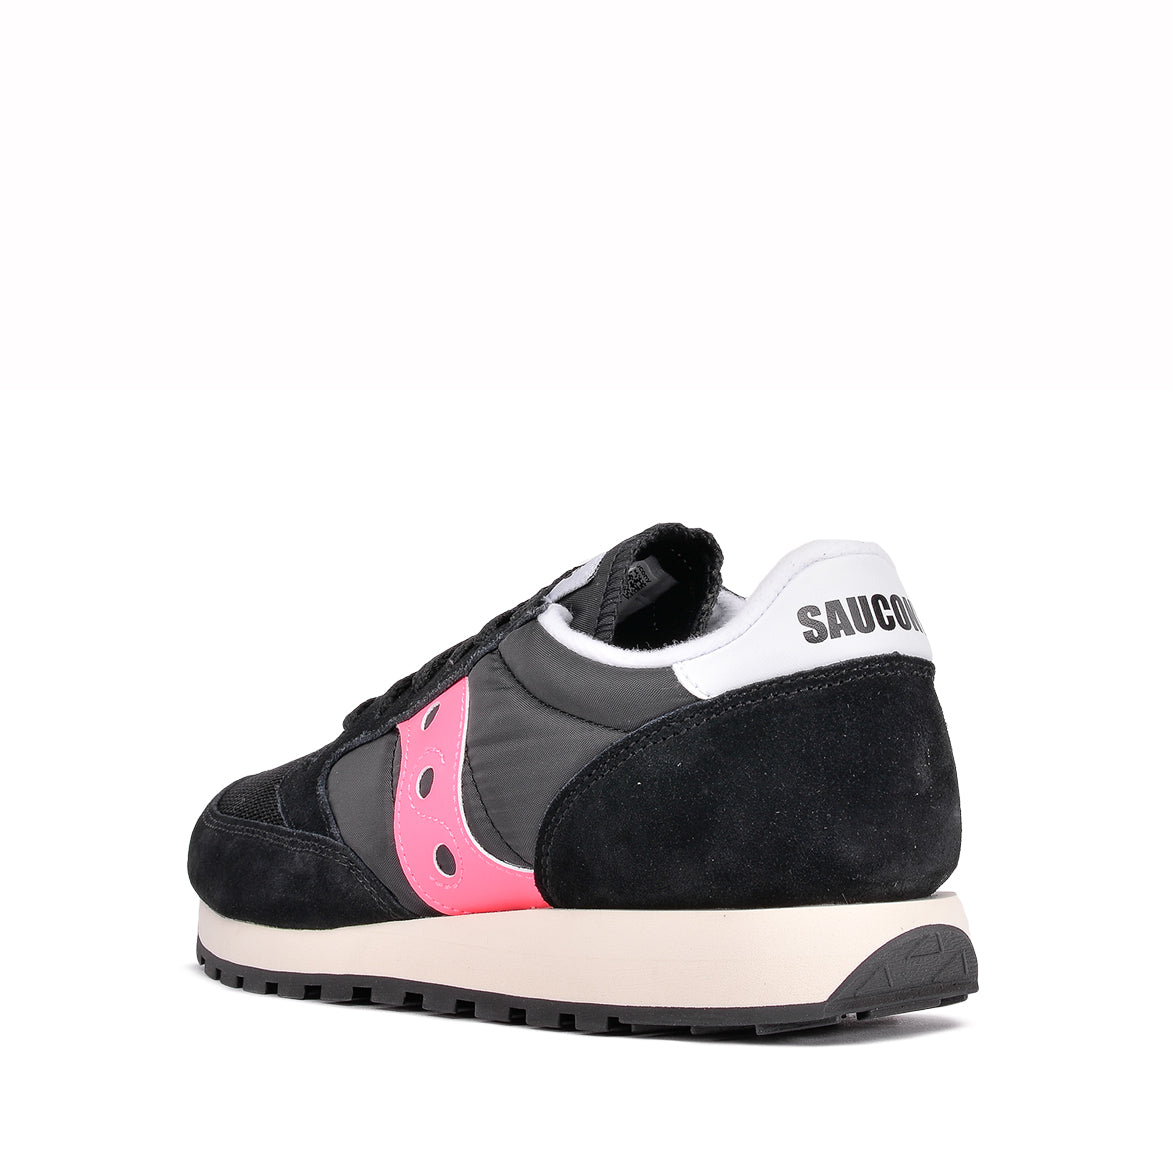 JAZZ ORIGINAL VINTAGE - BLACK / PINK